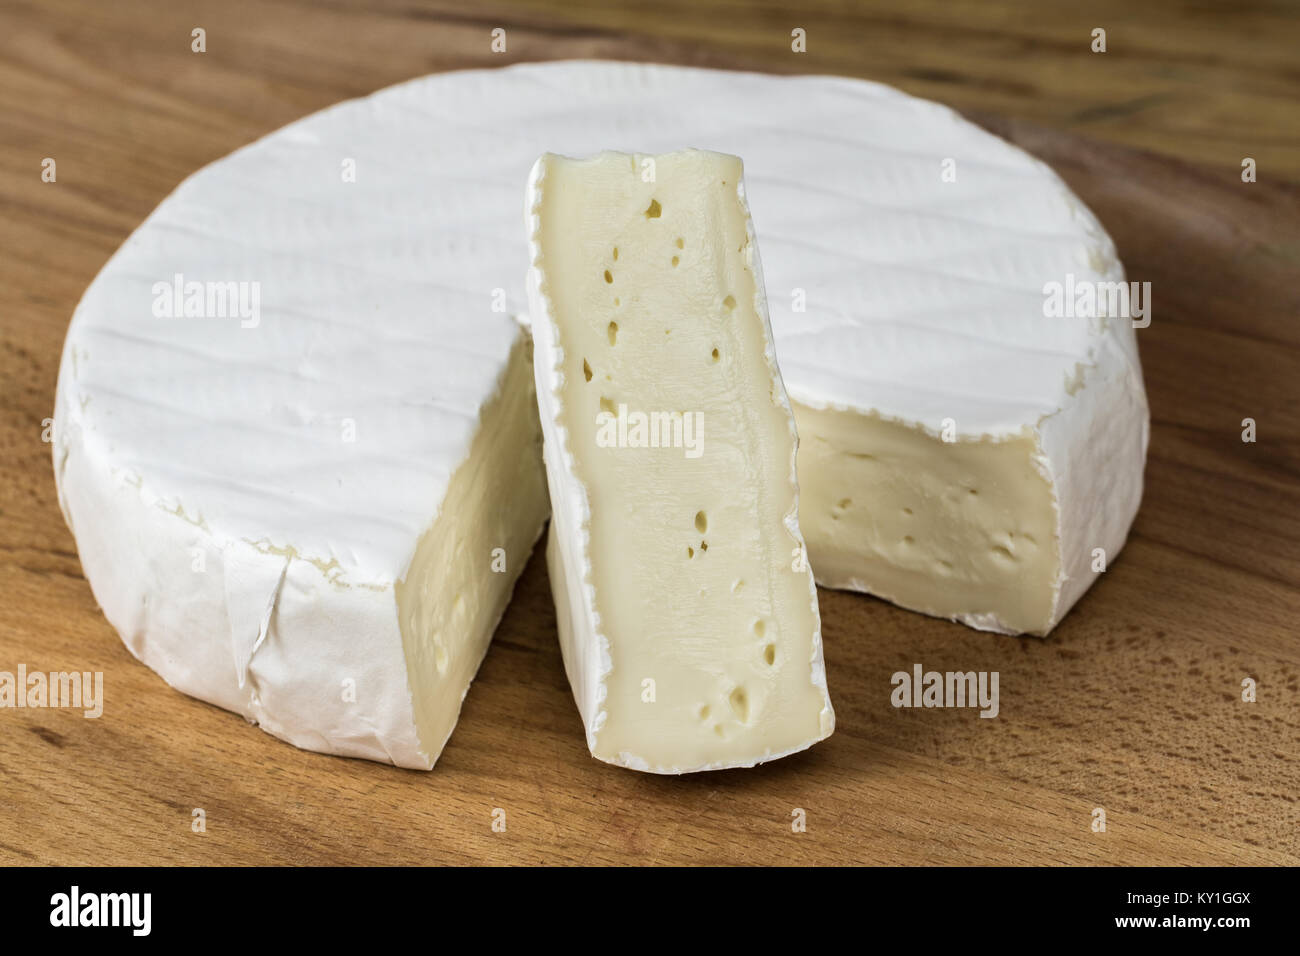 Camembert cheese brie.Triangle cut-out placed vertically. - Stock Image